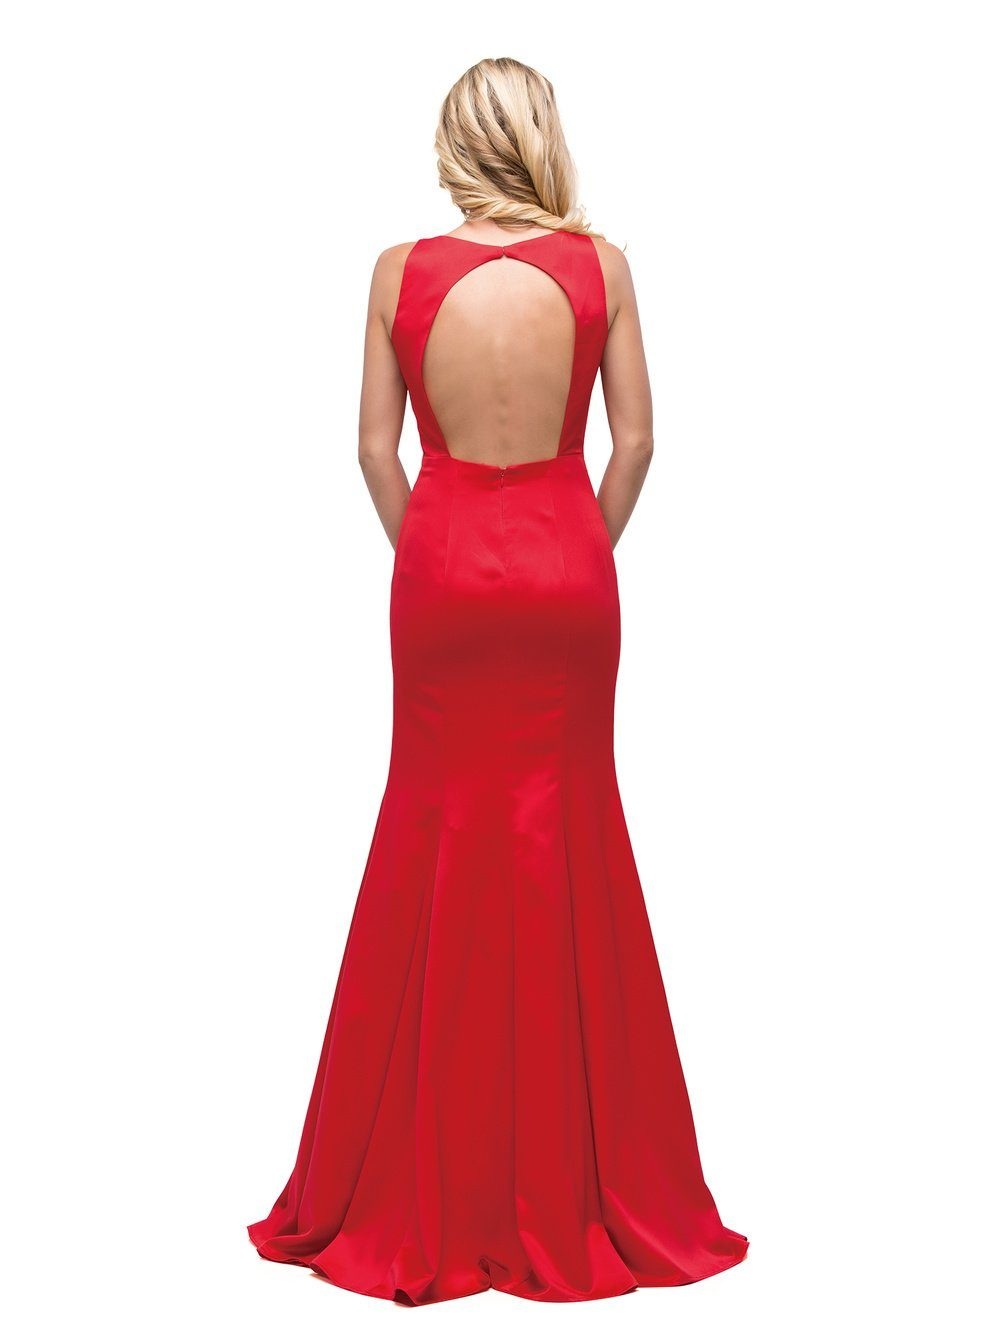 Long sexy evening gown - DQ 9638-Simply Fab Dress